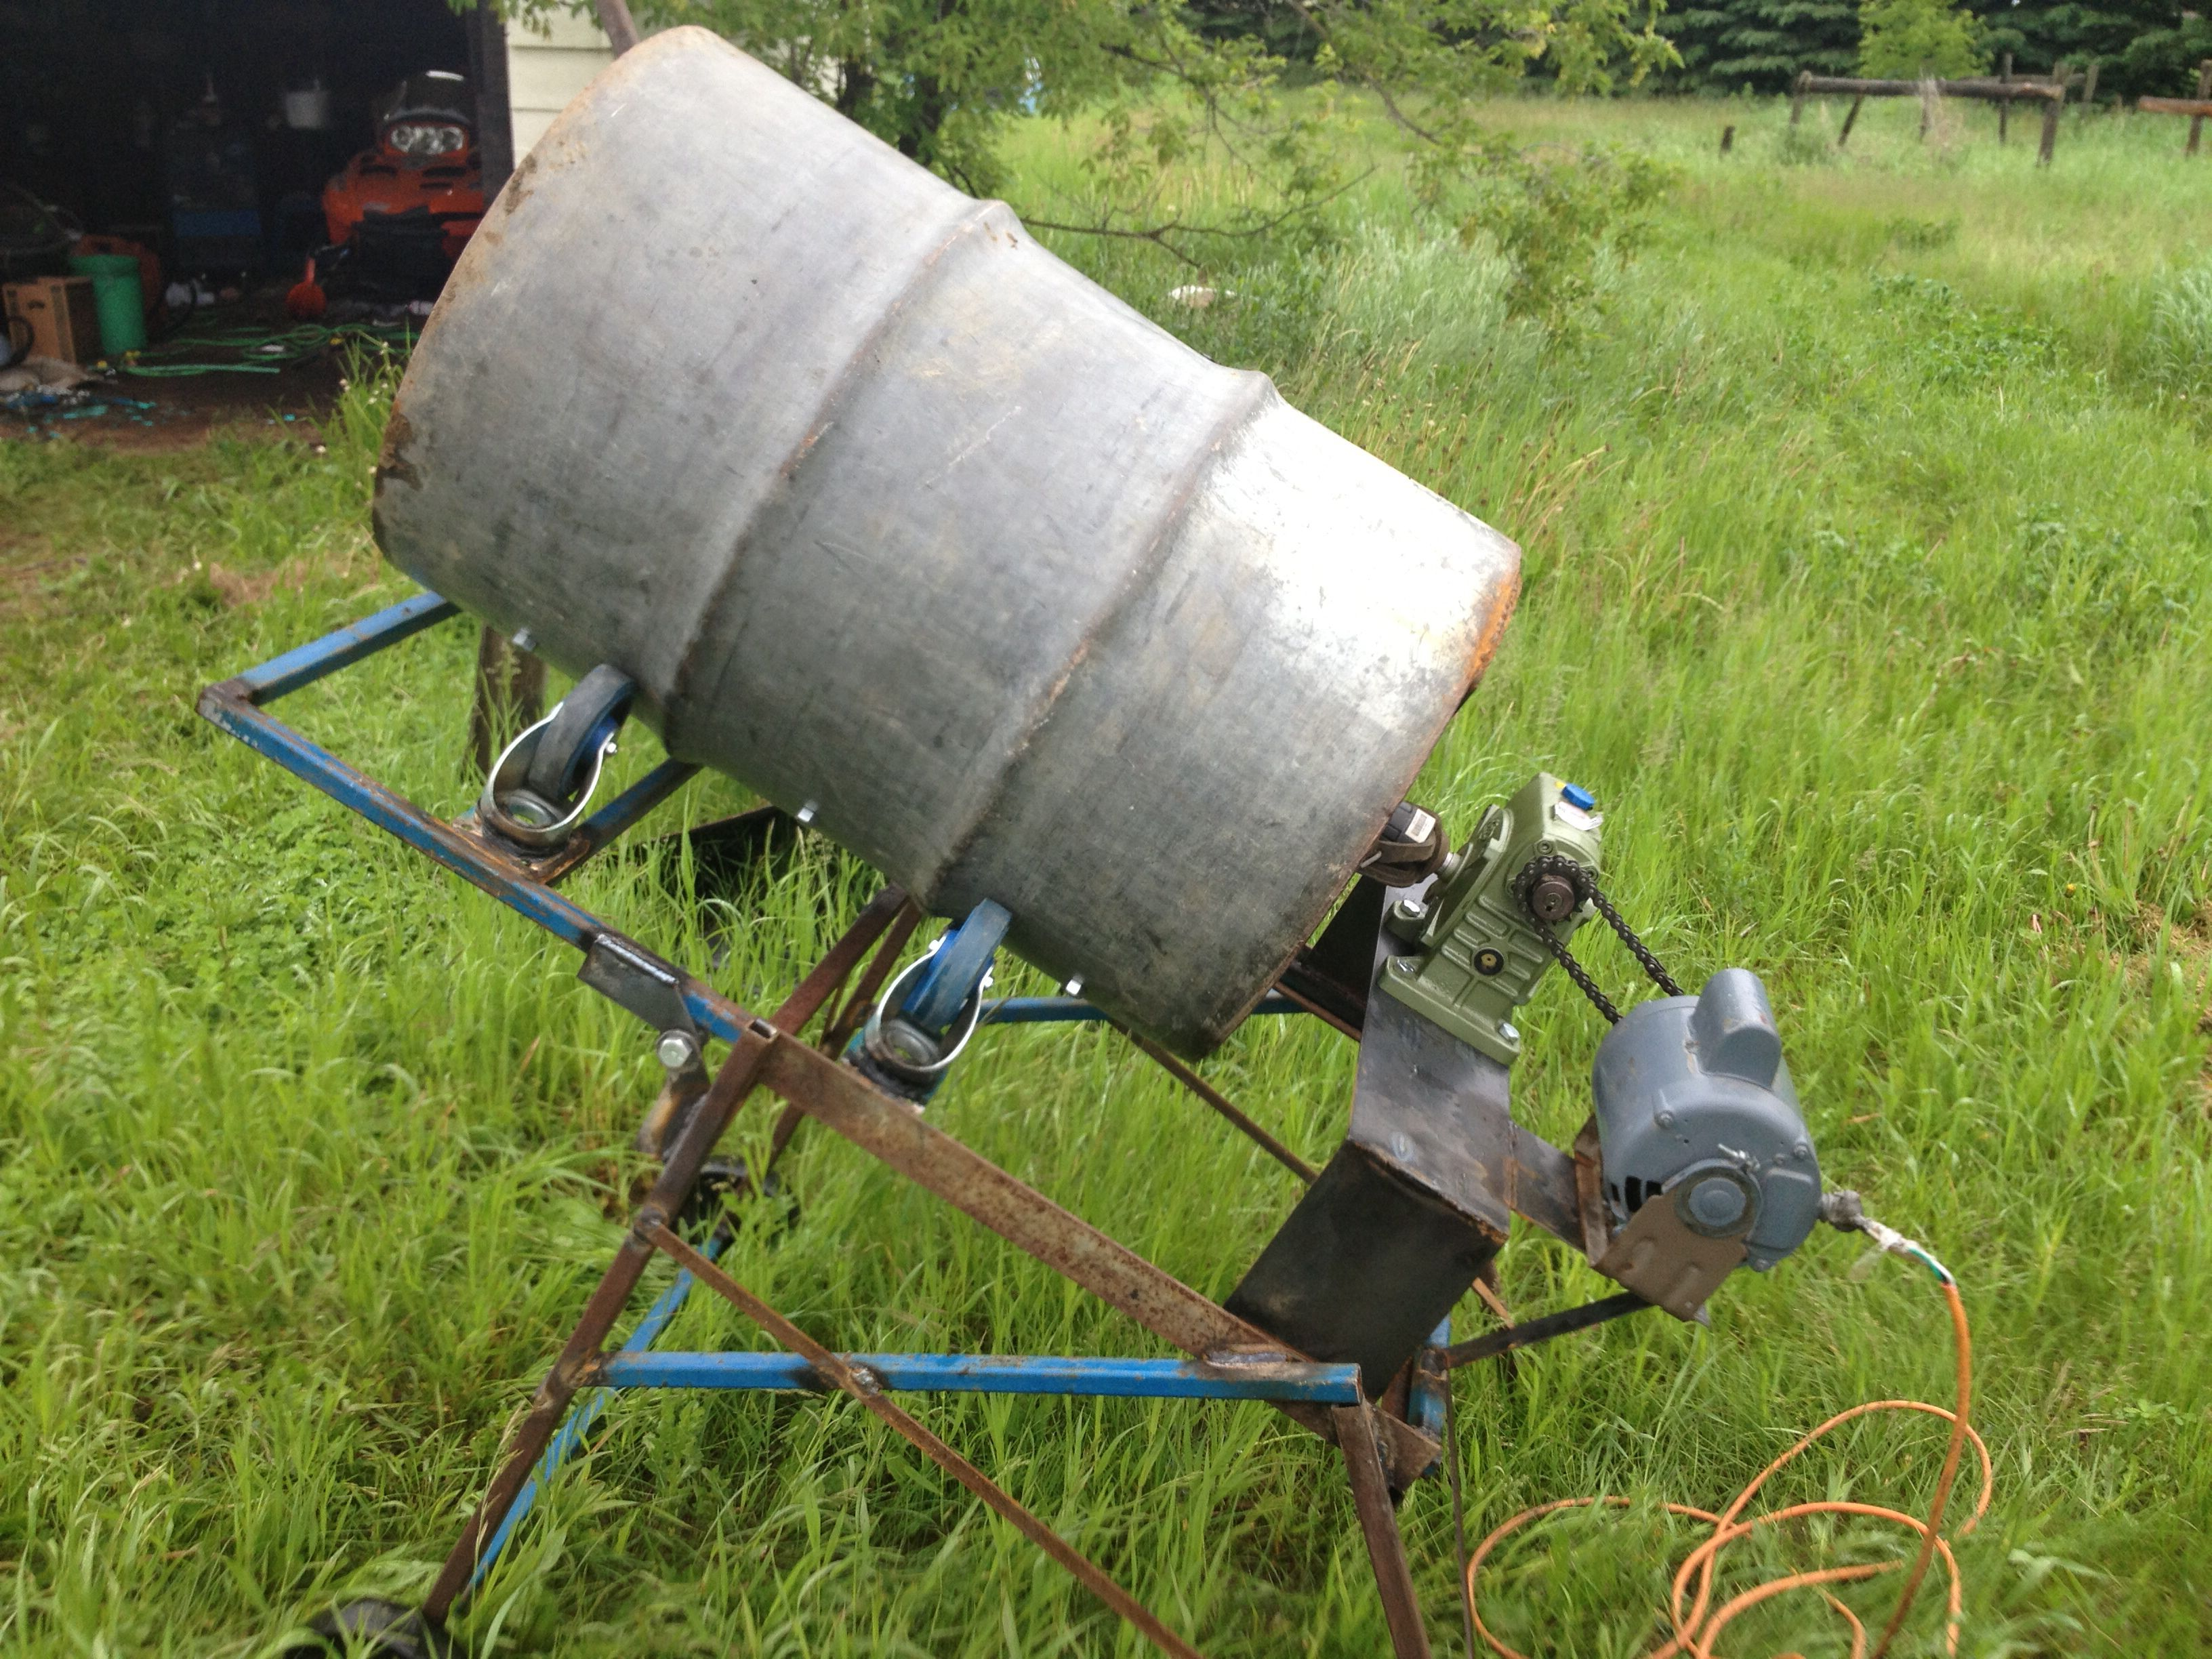 Home Made Cement Mixer Cement Mixers Concrete Mixers Homemade Tools